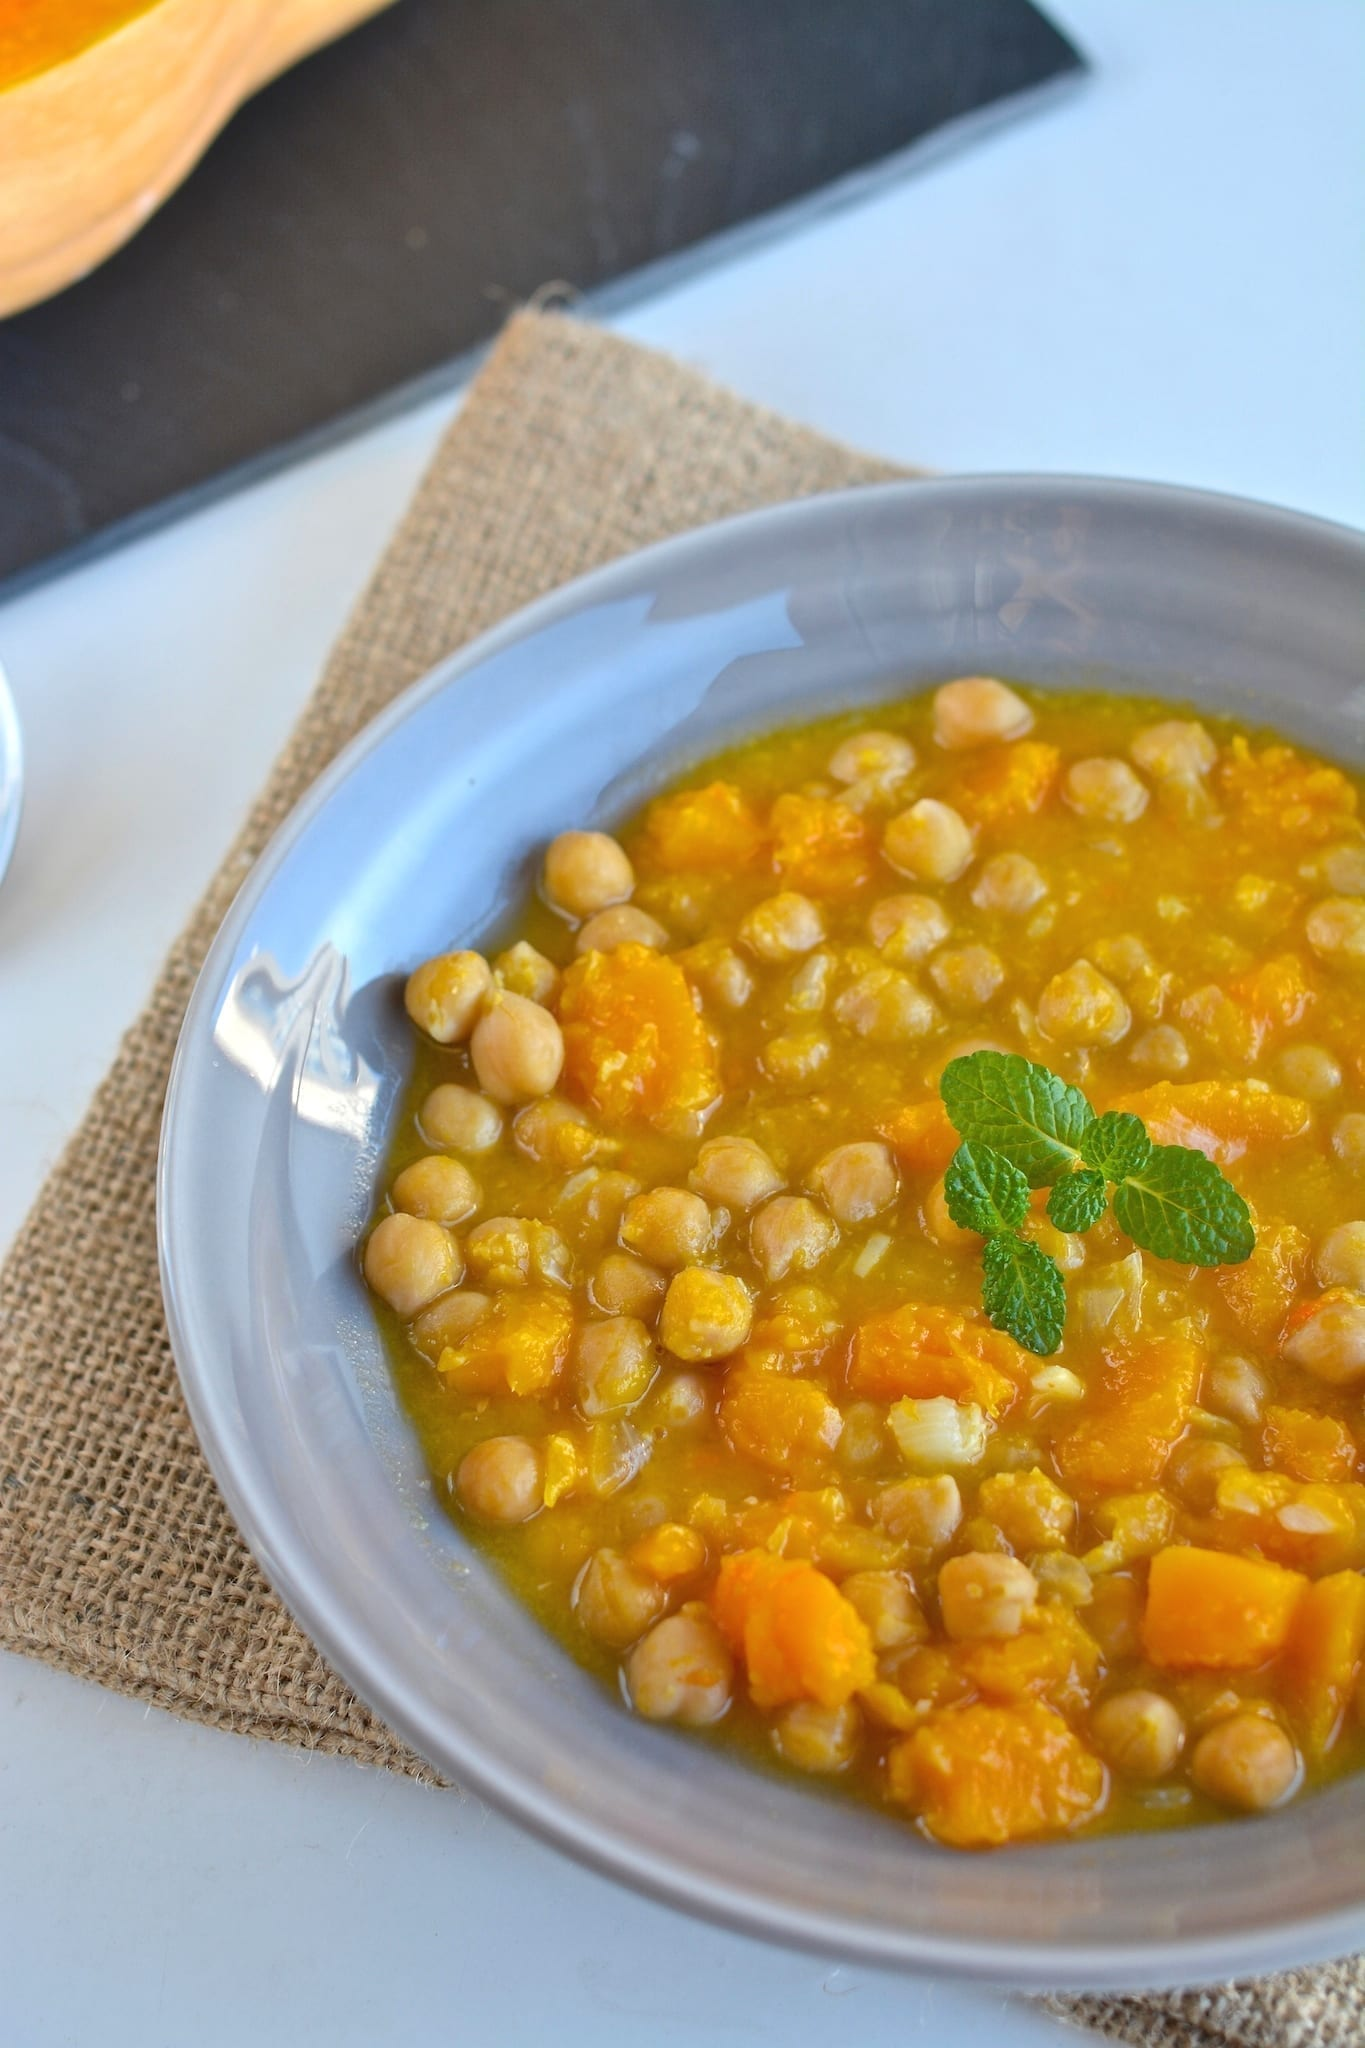 vegan squash or pumpkin stew with chickpeas and carrots